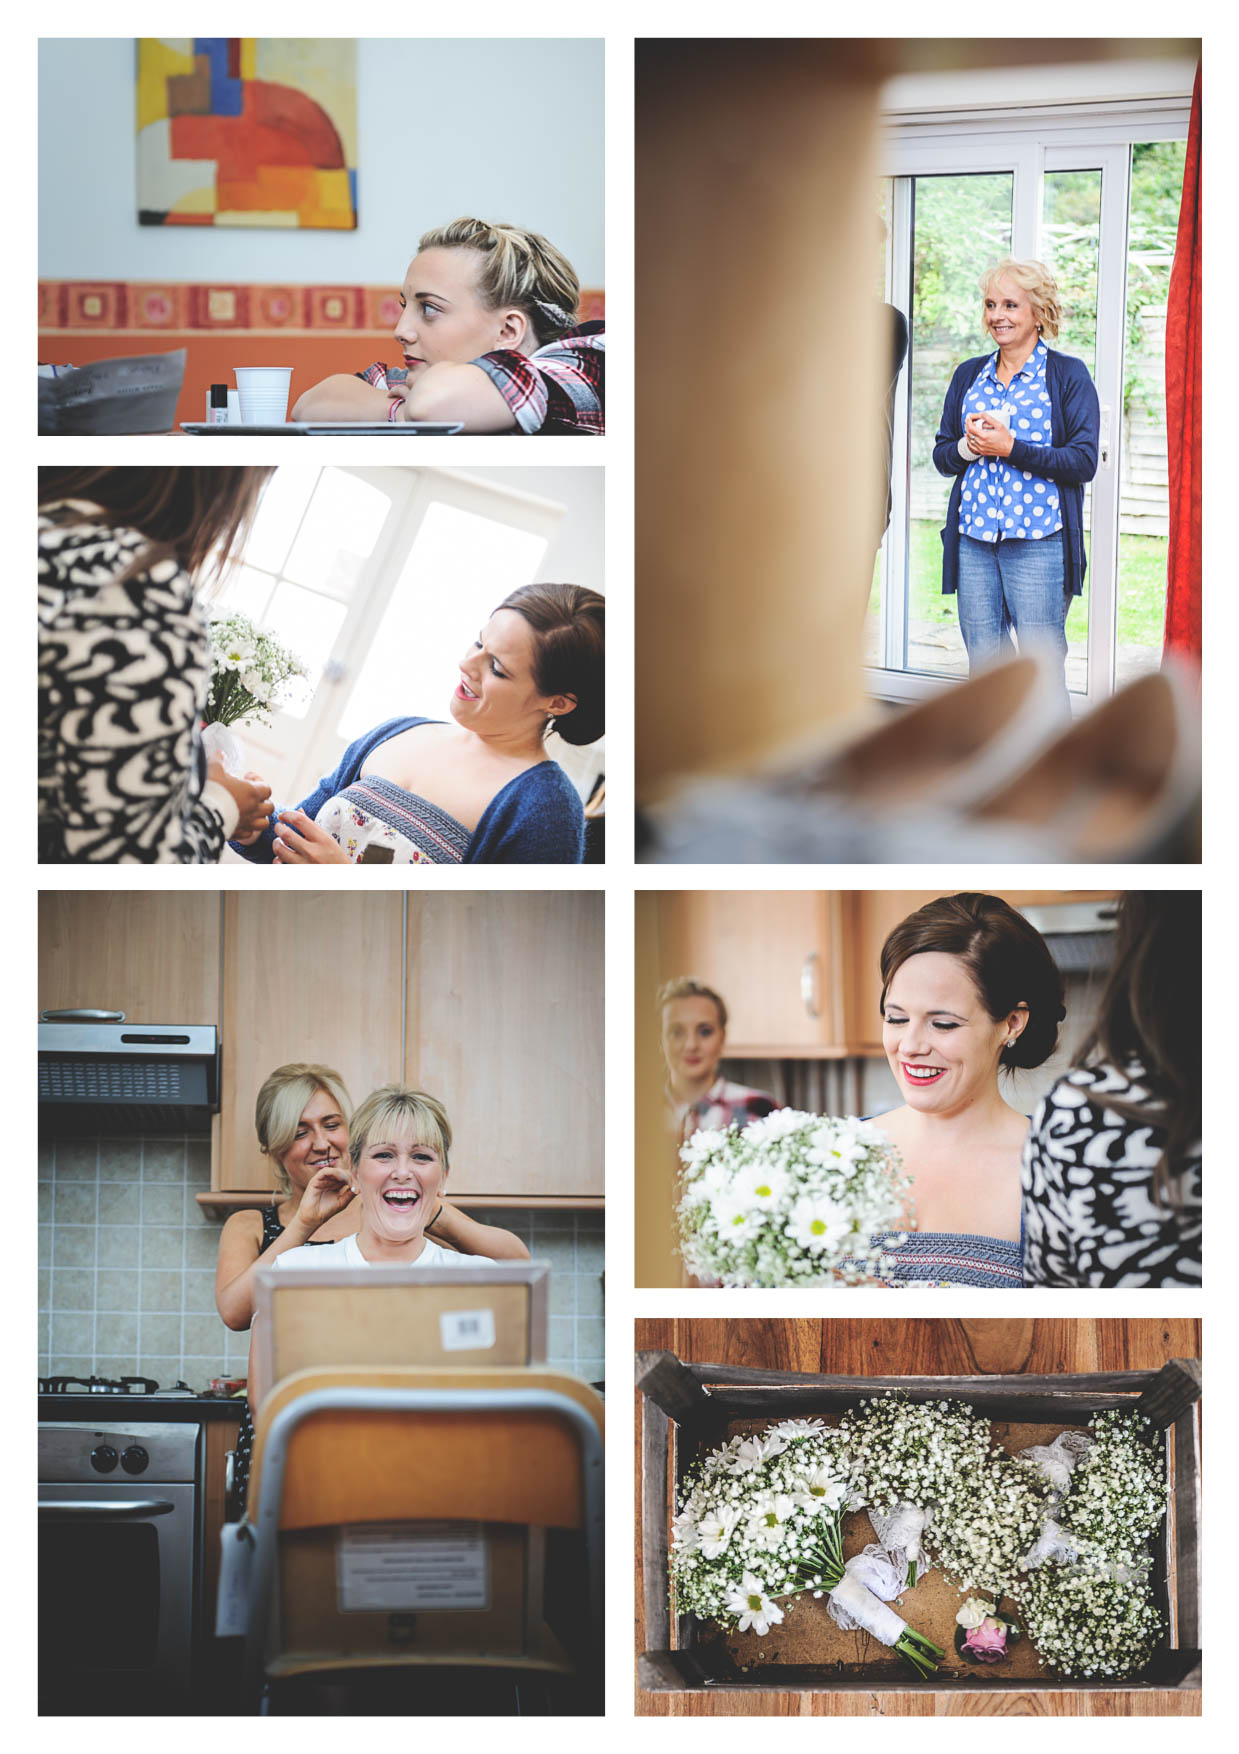 Images of a bride getting ready by Penarth Wedding Photographers